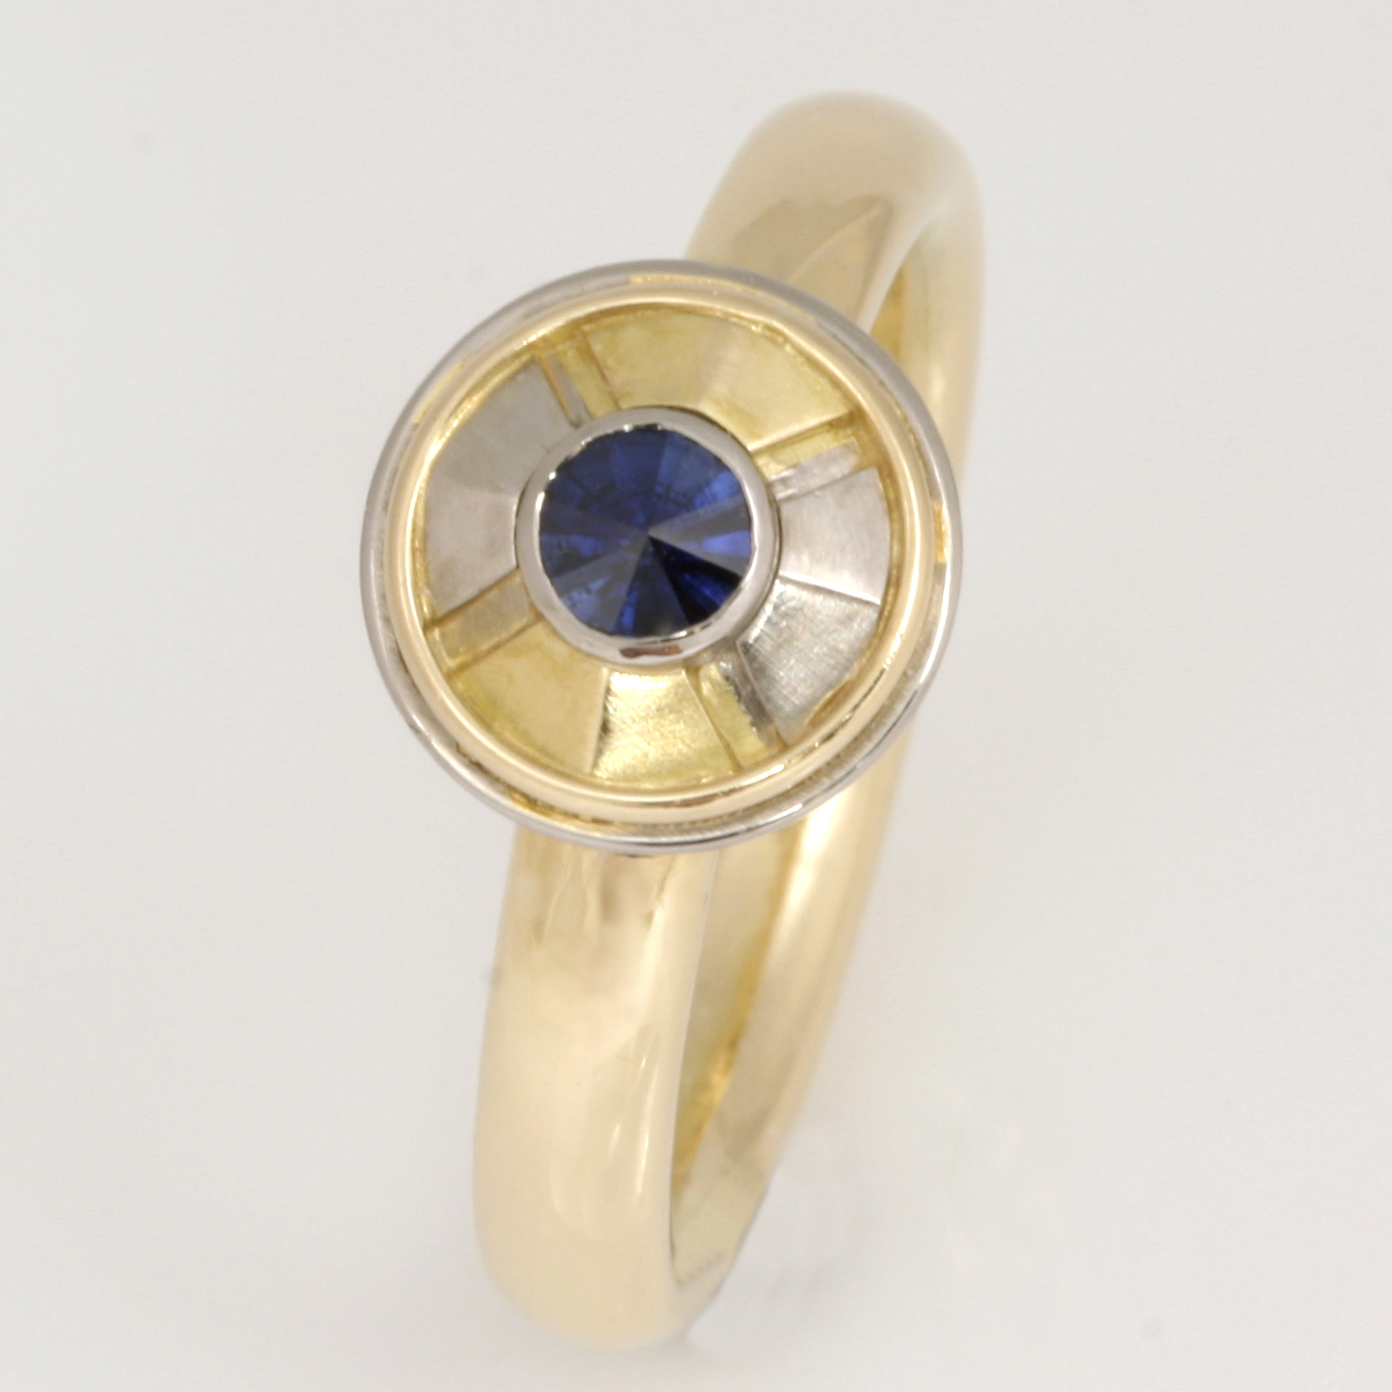 R054 Ladies 18ct yellow and white gold pie section ring featuring a spirit cut sapphire $2300